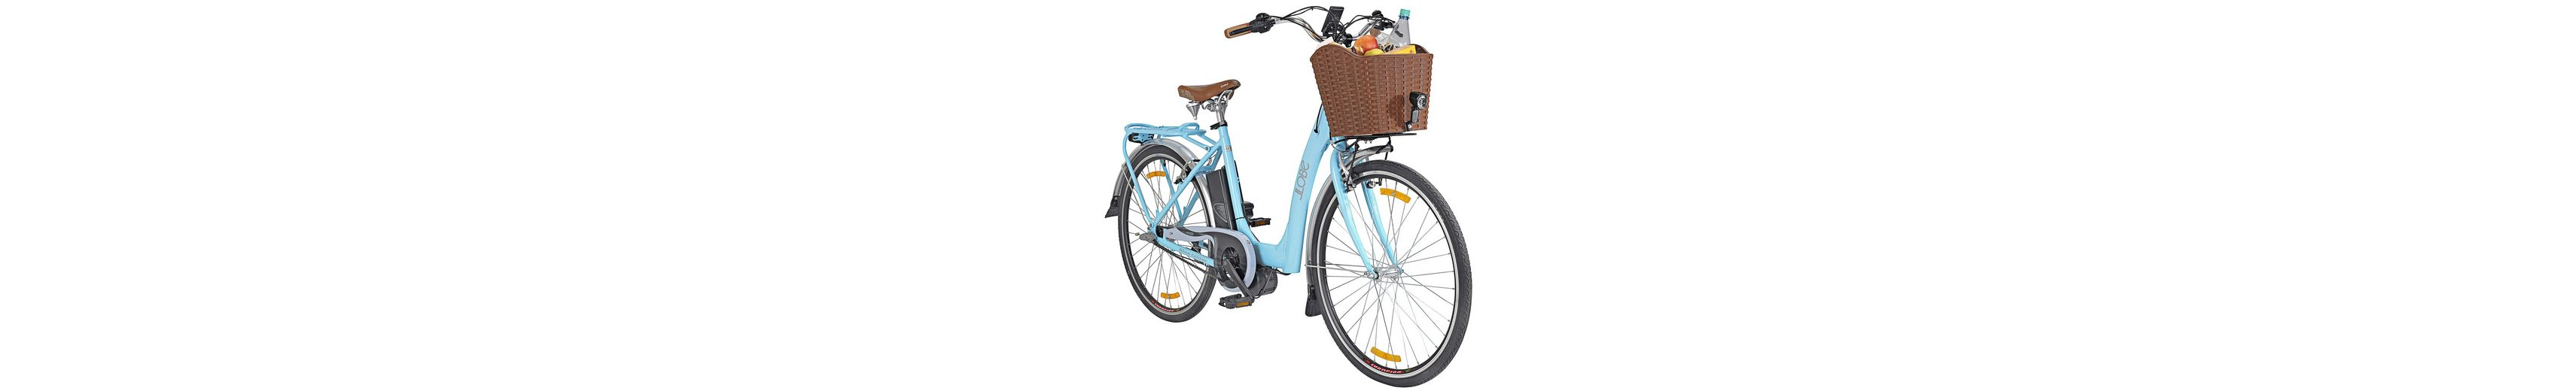 E-Bike City Damen »Blue Glider«, 28 Zoll, 3 Gang, Mittelmotor, 374 Wh